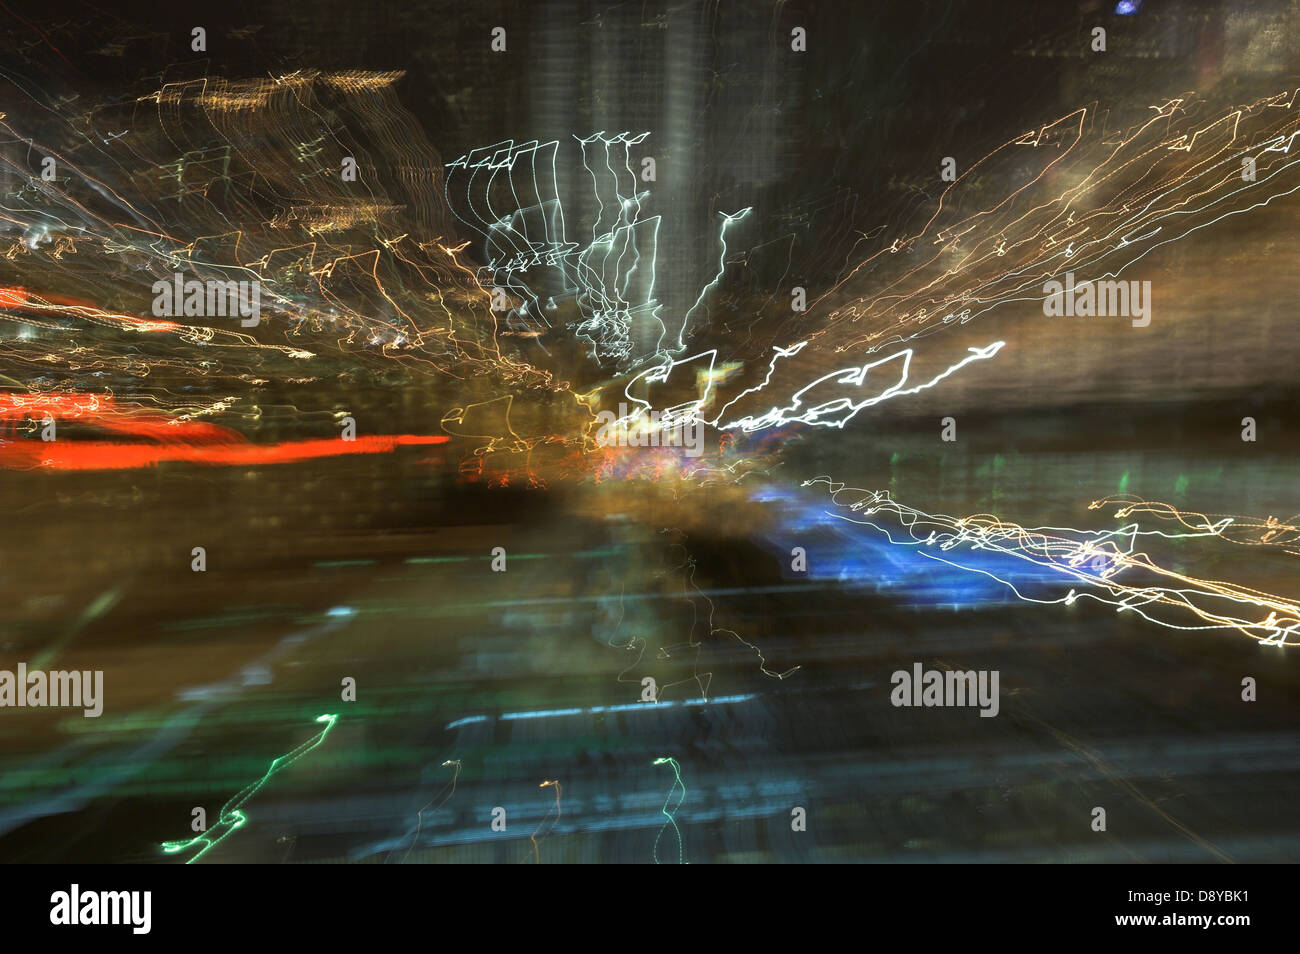 Abstract background of frenzied city lights in traffic - Stock Image